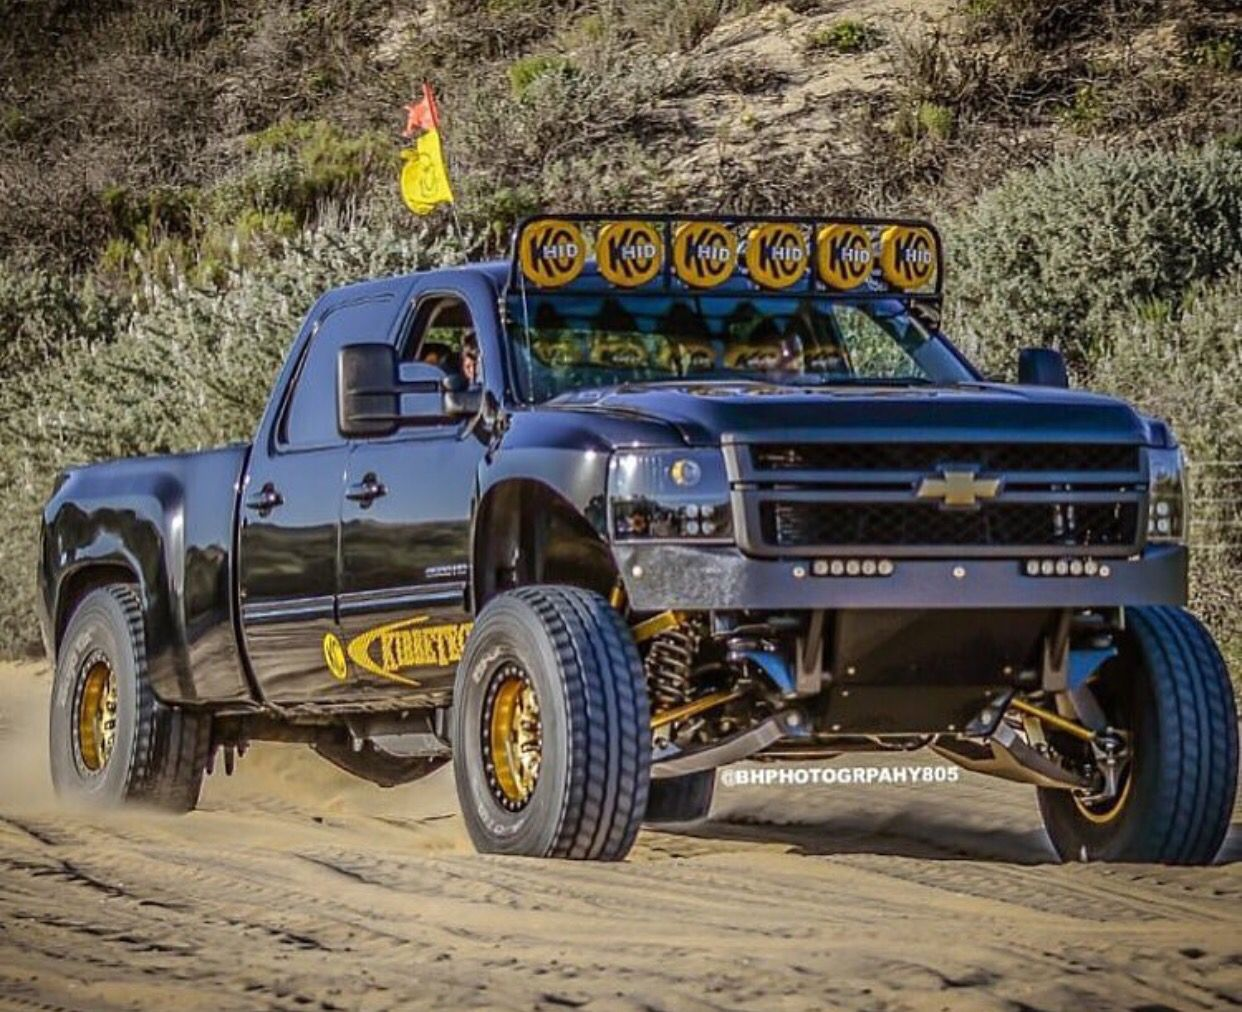 All Chevy black chevy reaper : Chevy Reaper Rally Truck | General Moters | Pinterest | Chevy ...